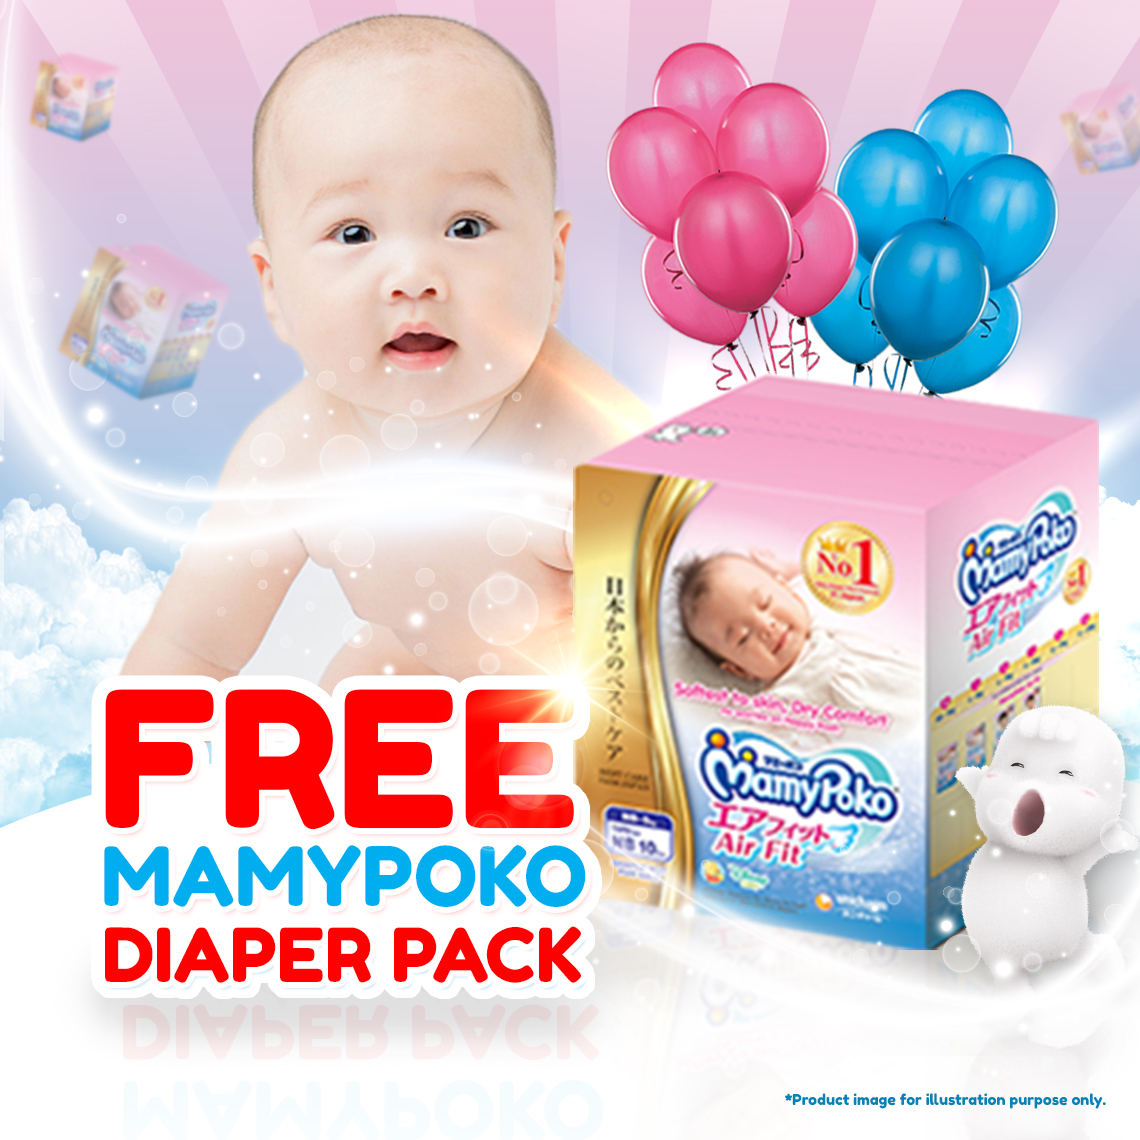 Free Mamypoko Air Fit Diaper Sample